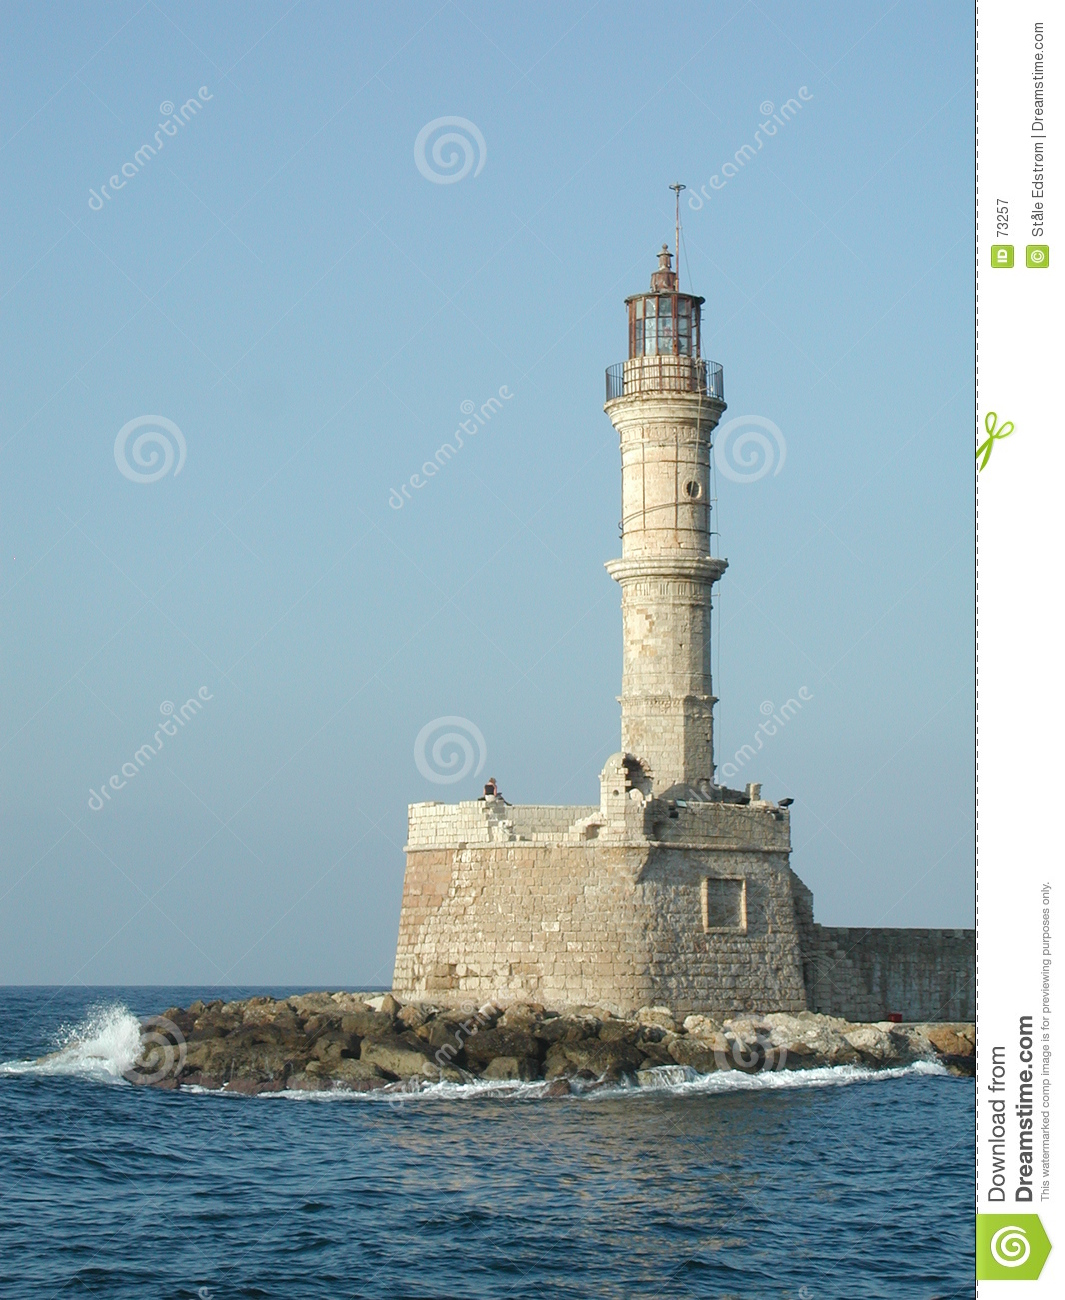 Light Tower Stock Image. Image Of Roman, Guardian, Chania